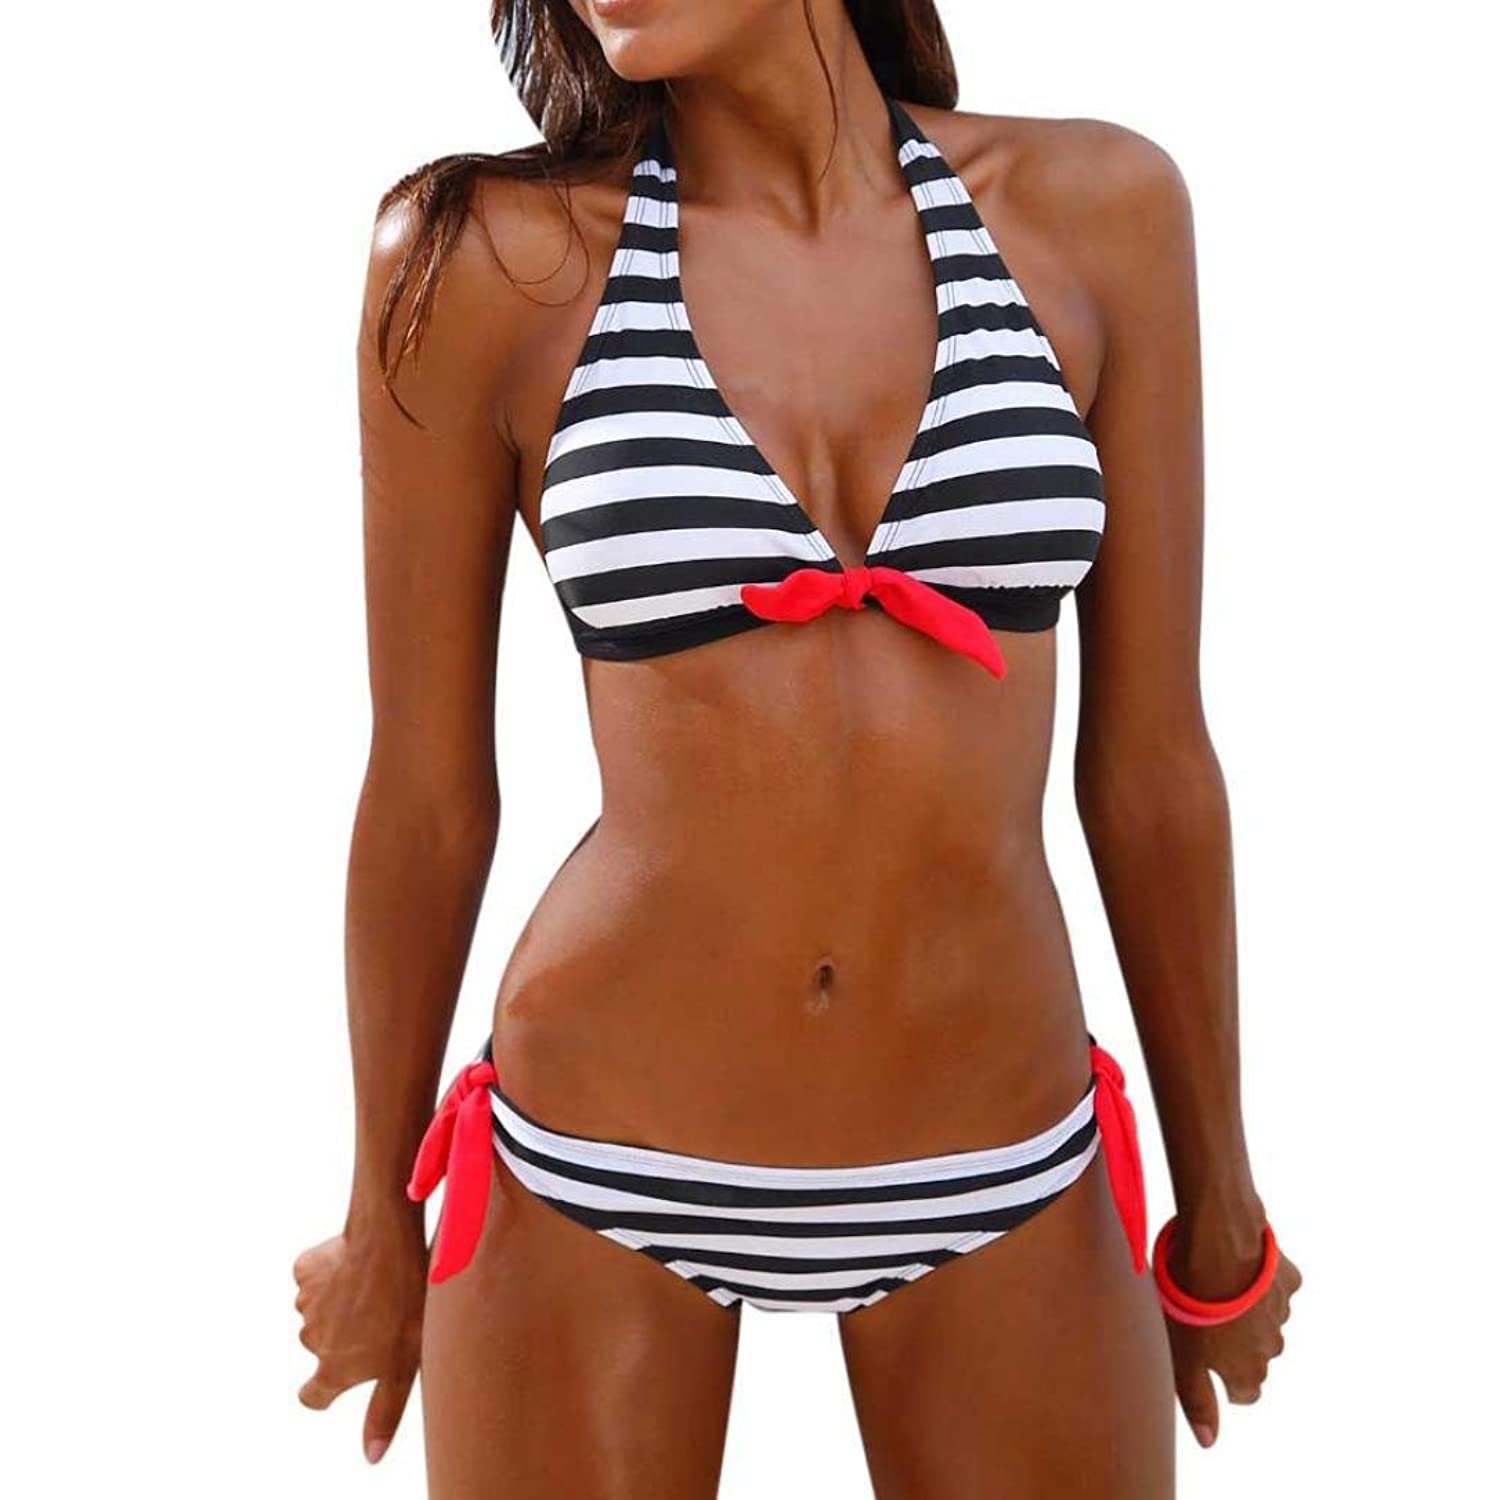 7a718dc3ee3d9 (swimsuits bikini bathing suits swimwear one piece swimsuit for women plus  size high waisted suit cover ups push up tops juniors micro ...